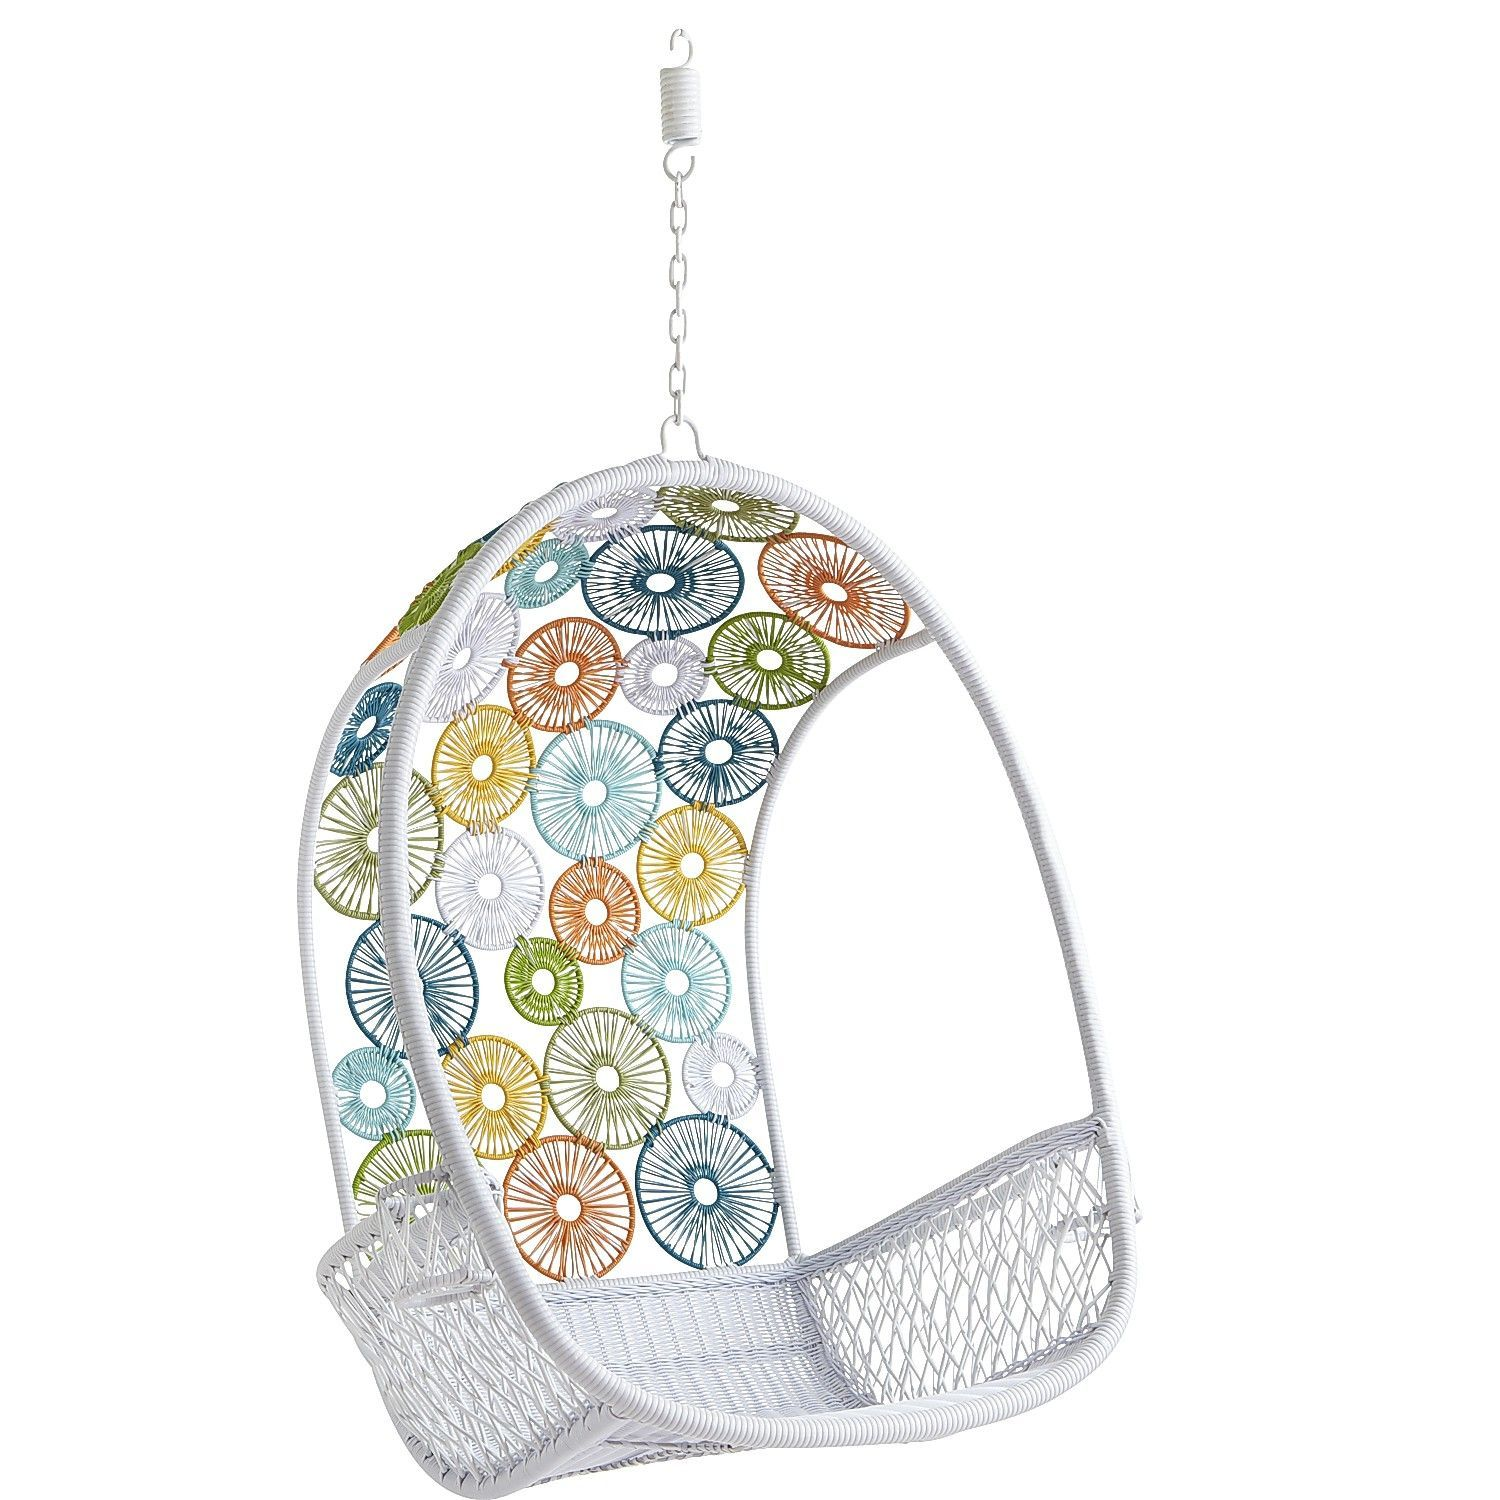 Swingasan 174 Circles Pier 1 Imports Ava S Room Patio